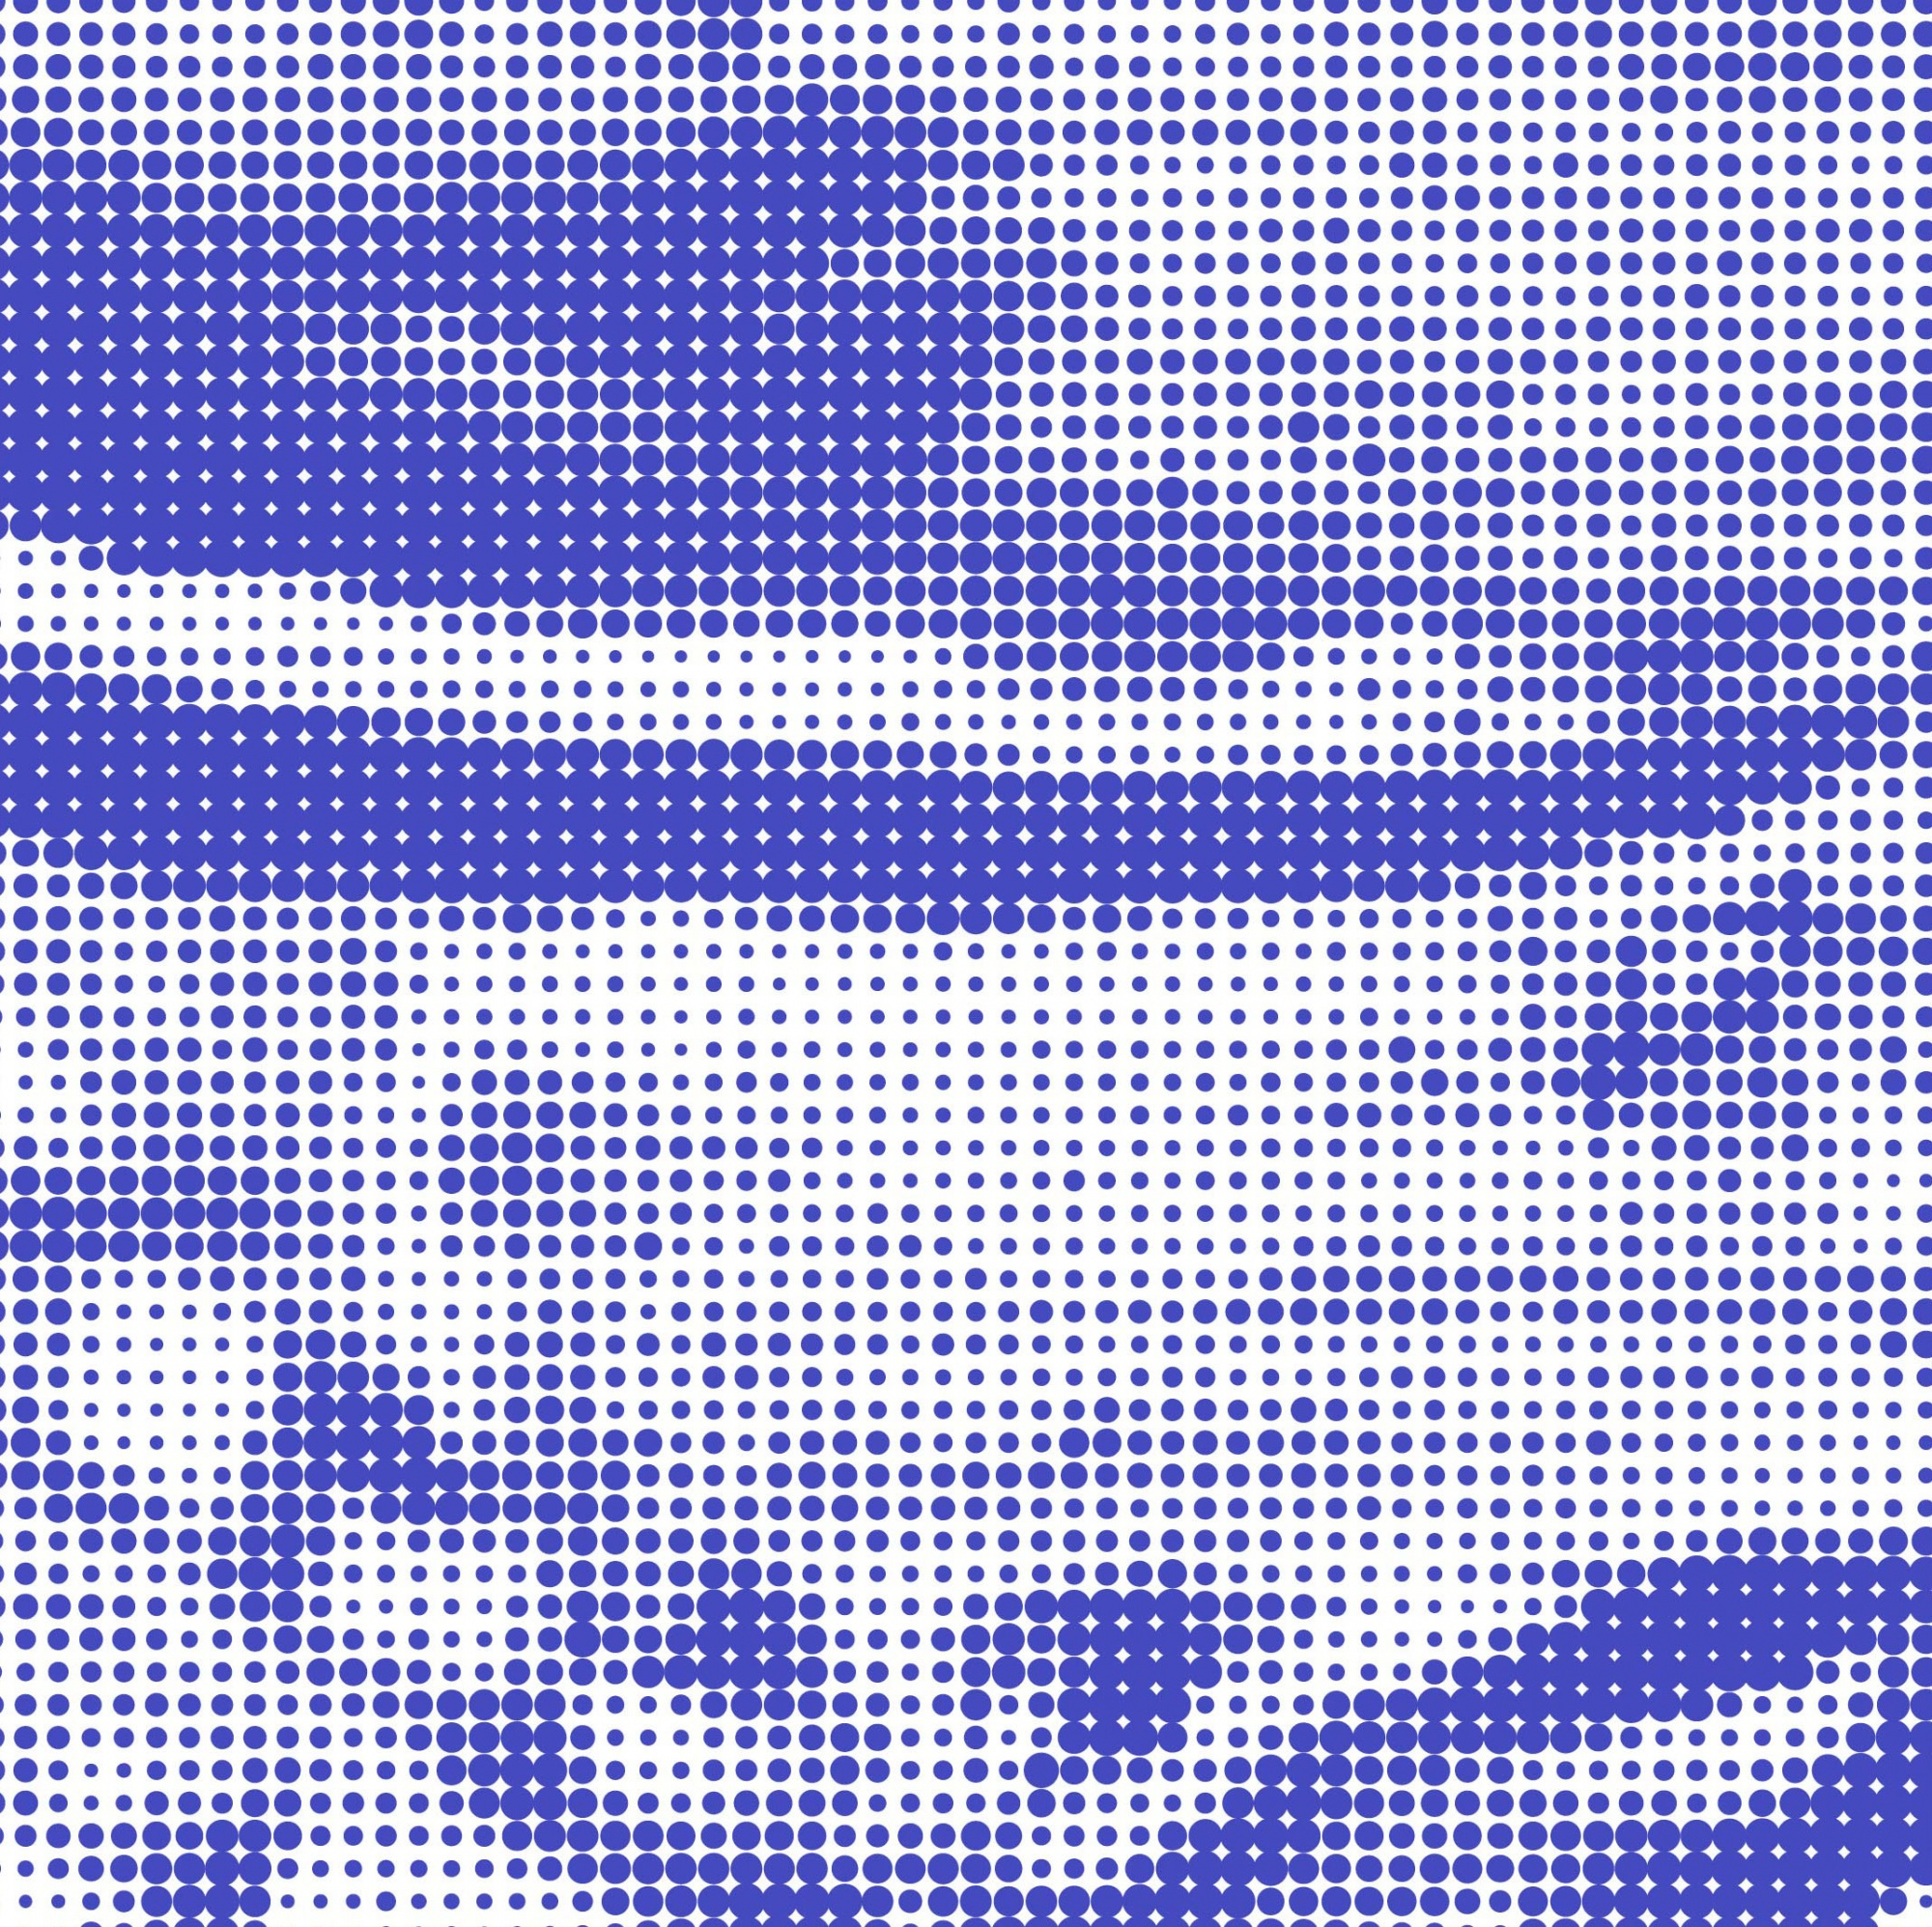 Blue and white halftone background